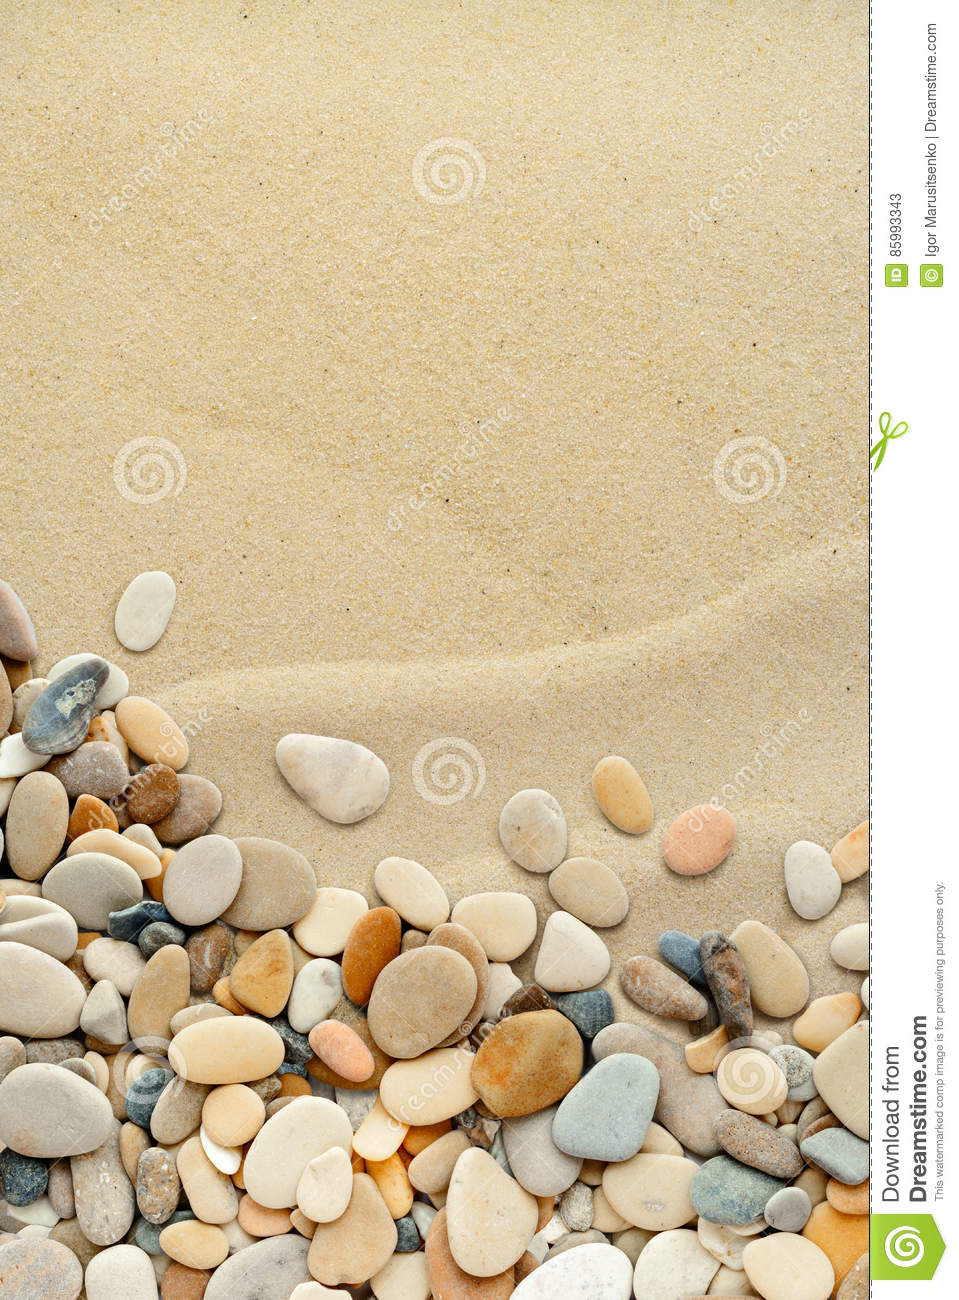 Smooth shaped white stones surface texture background stock photo - Pebbles Texture Border On White Background